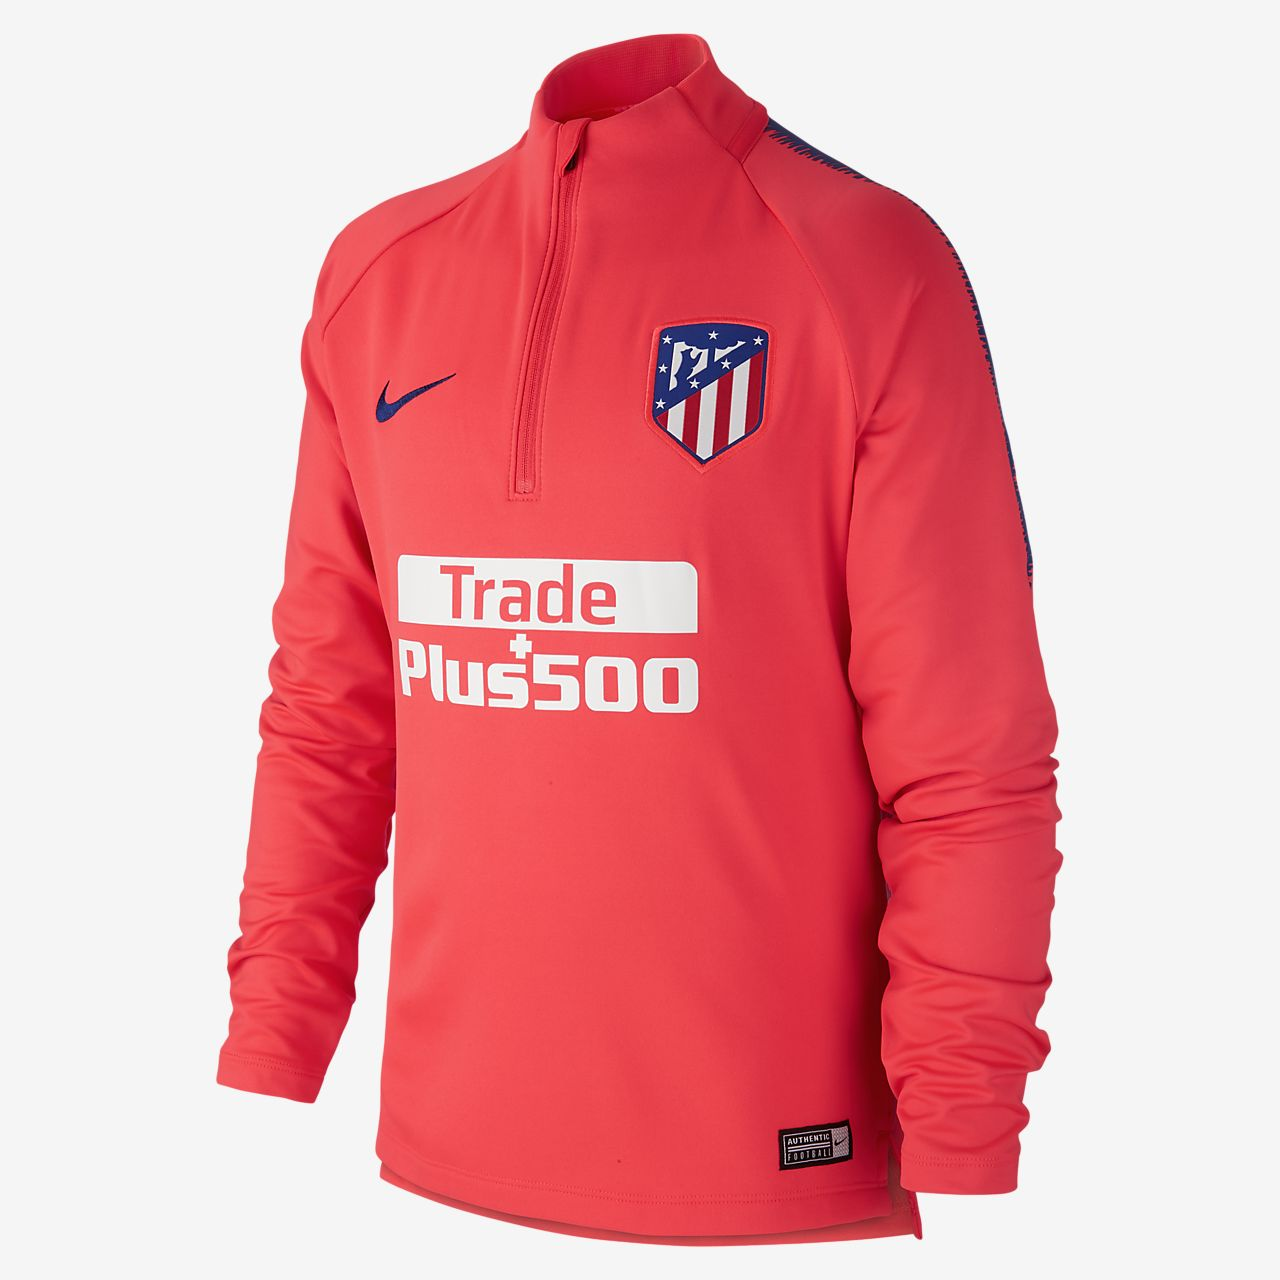 95d8125442d82 Older Kids' Long-Sleeve Football Top. Atletico de Madrid Dri-FIT Squad Drill